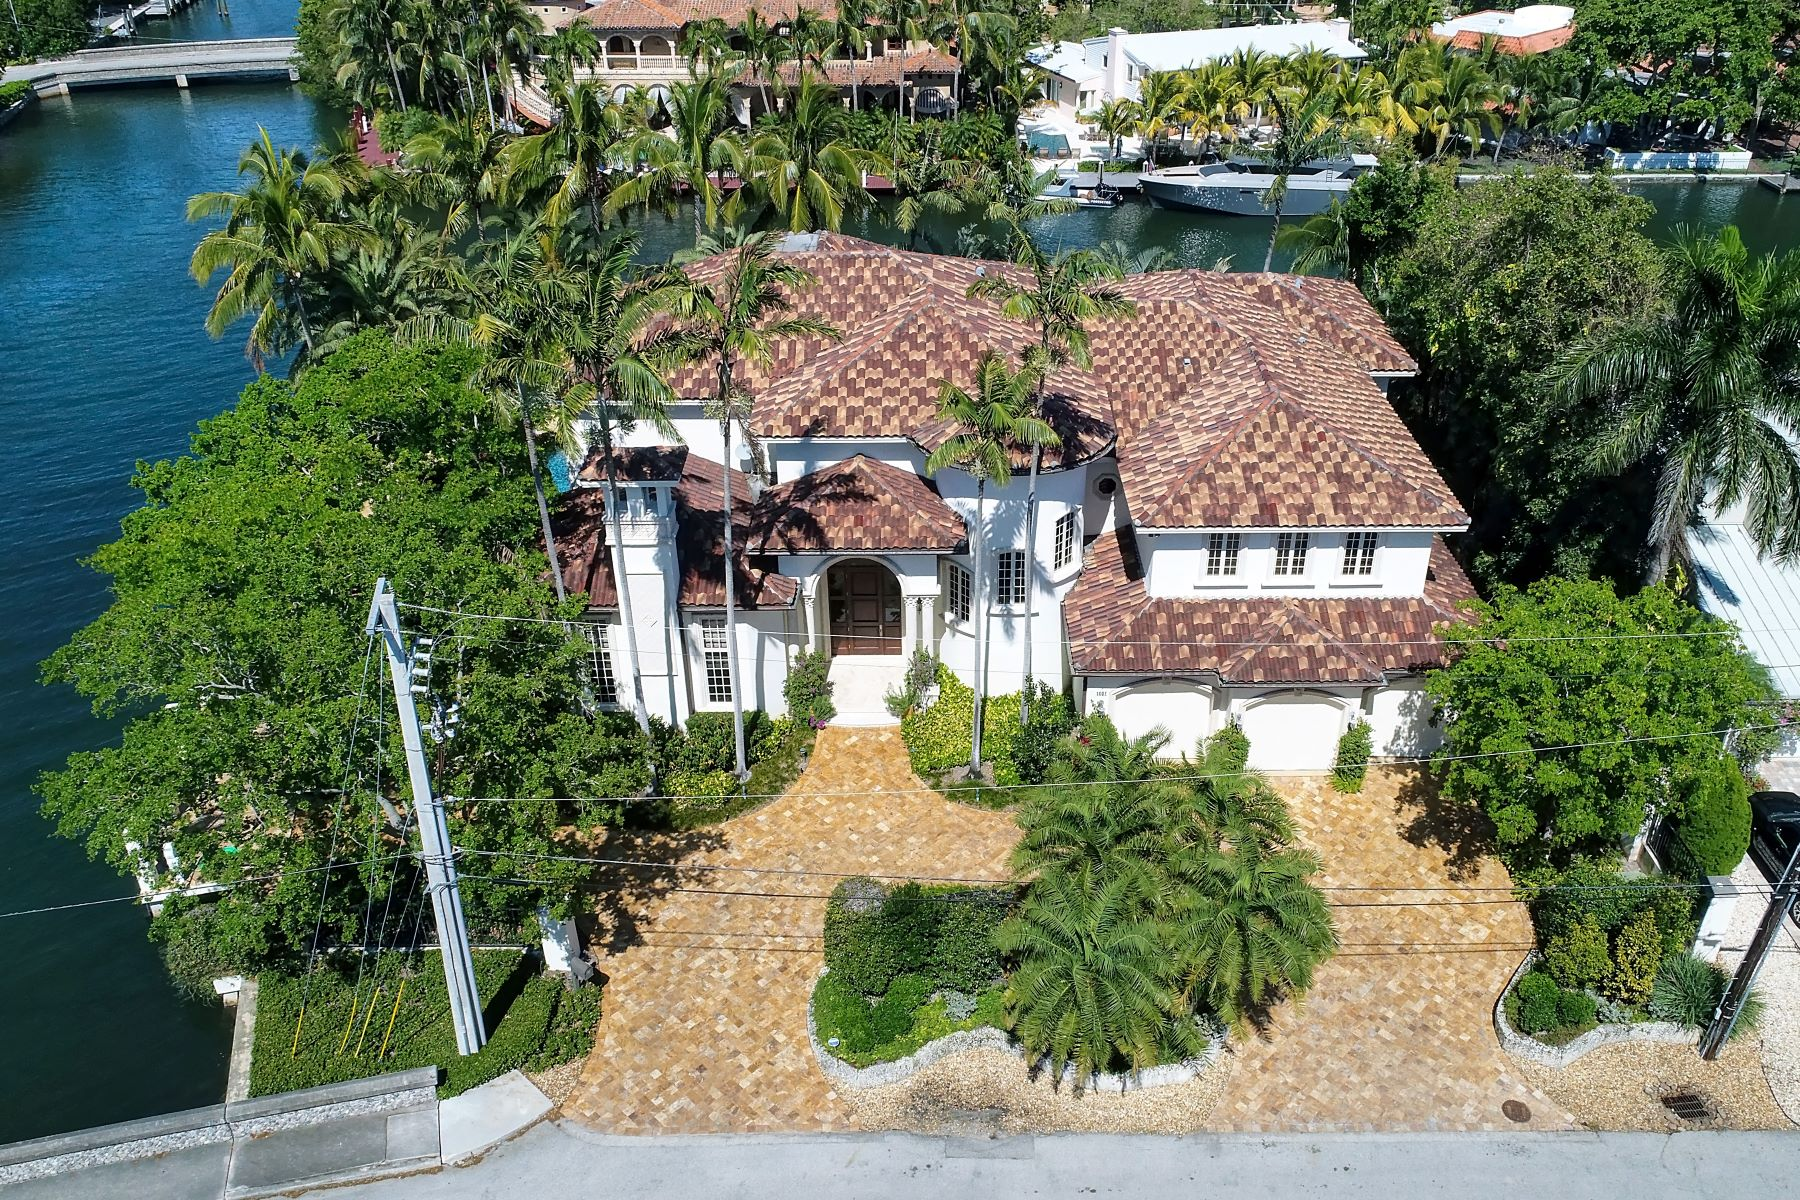 Single Family Home for Sale at 1601 Se 8 St 1601 Se 8 St Fort Lauderdale, Florida 33316 United States